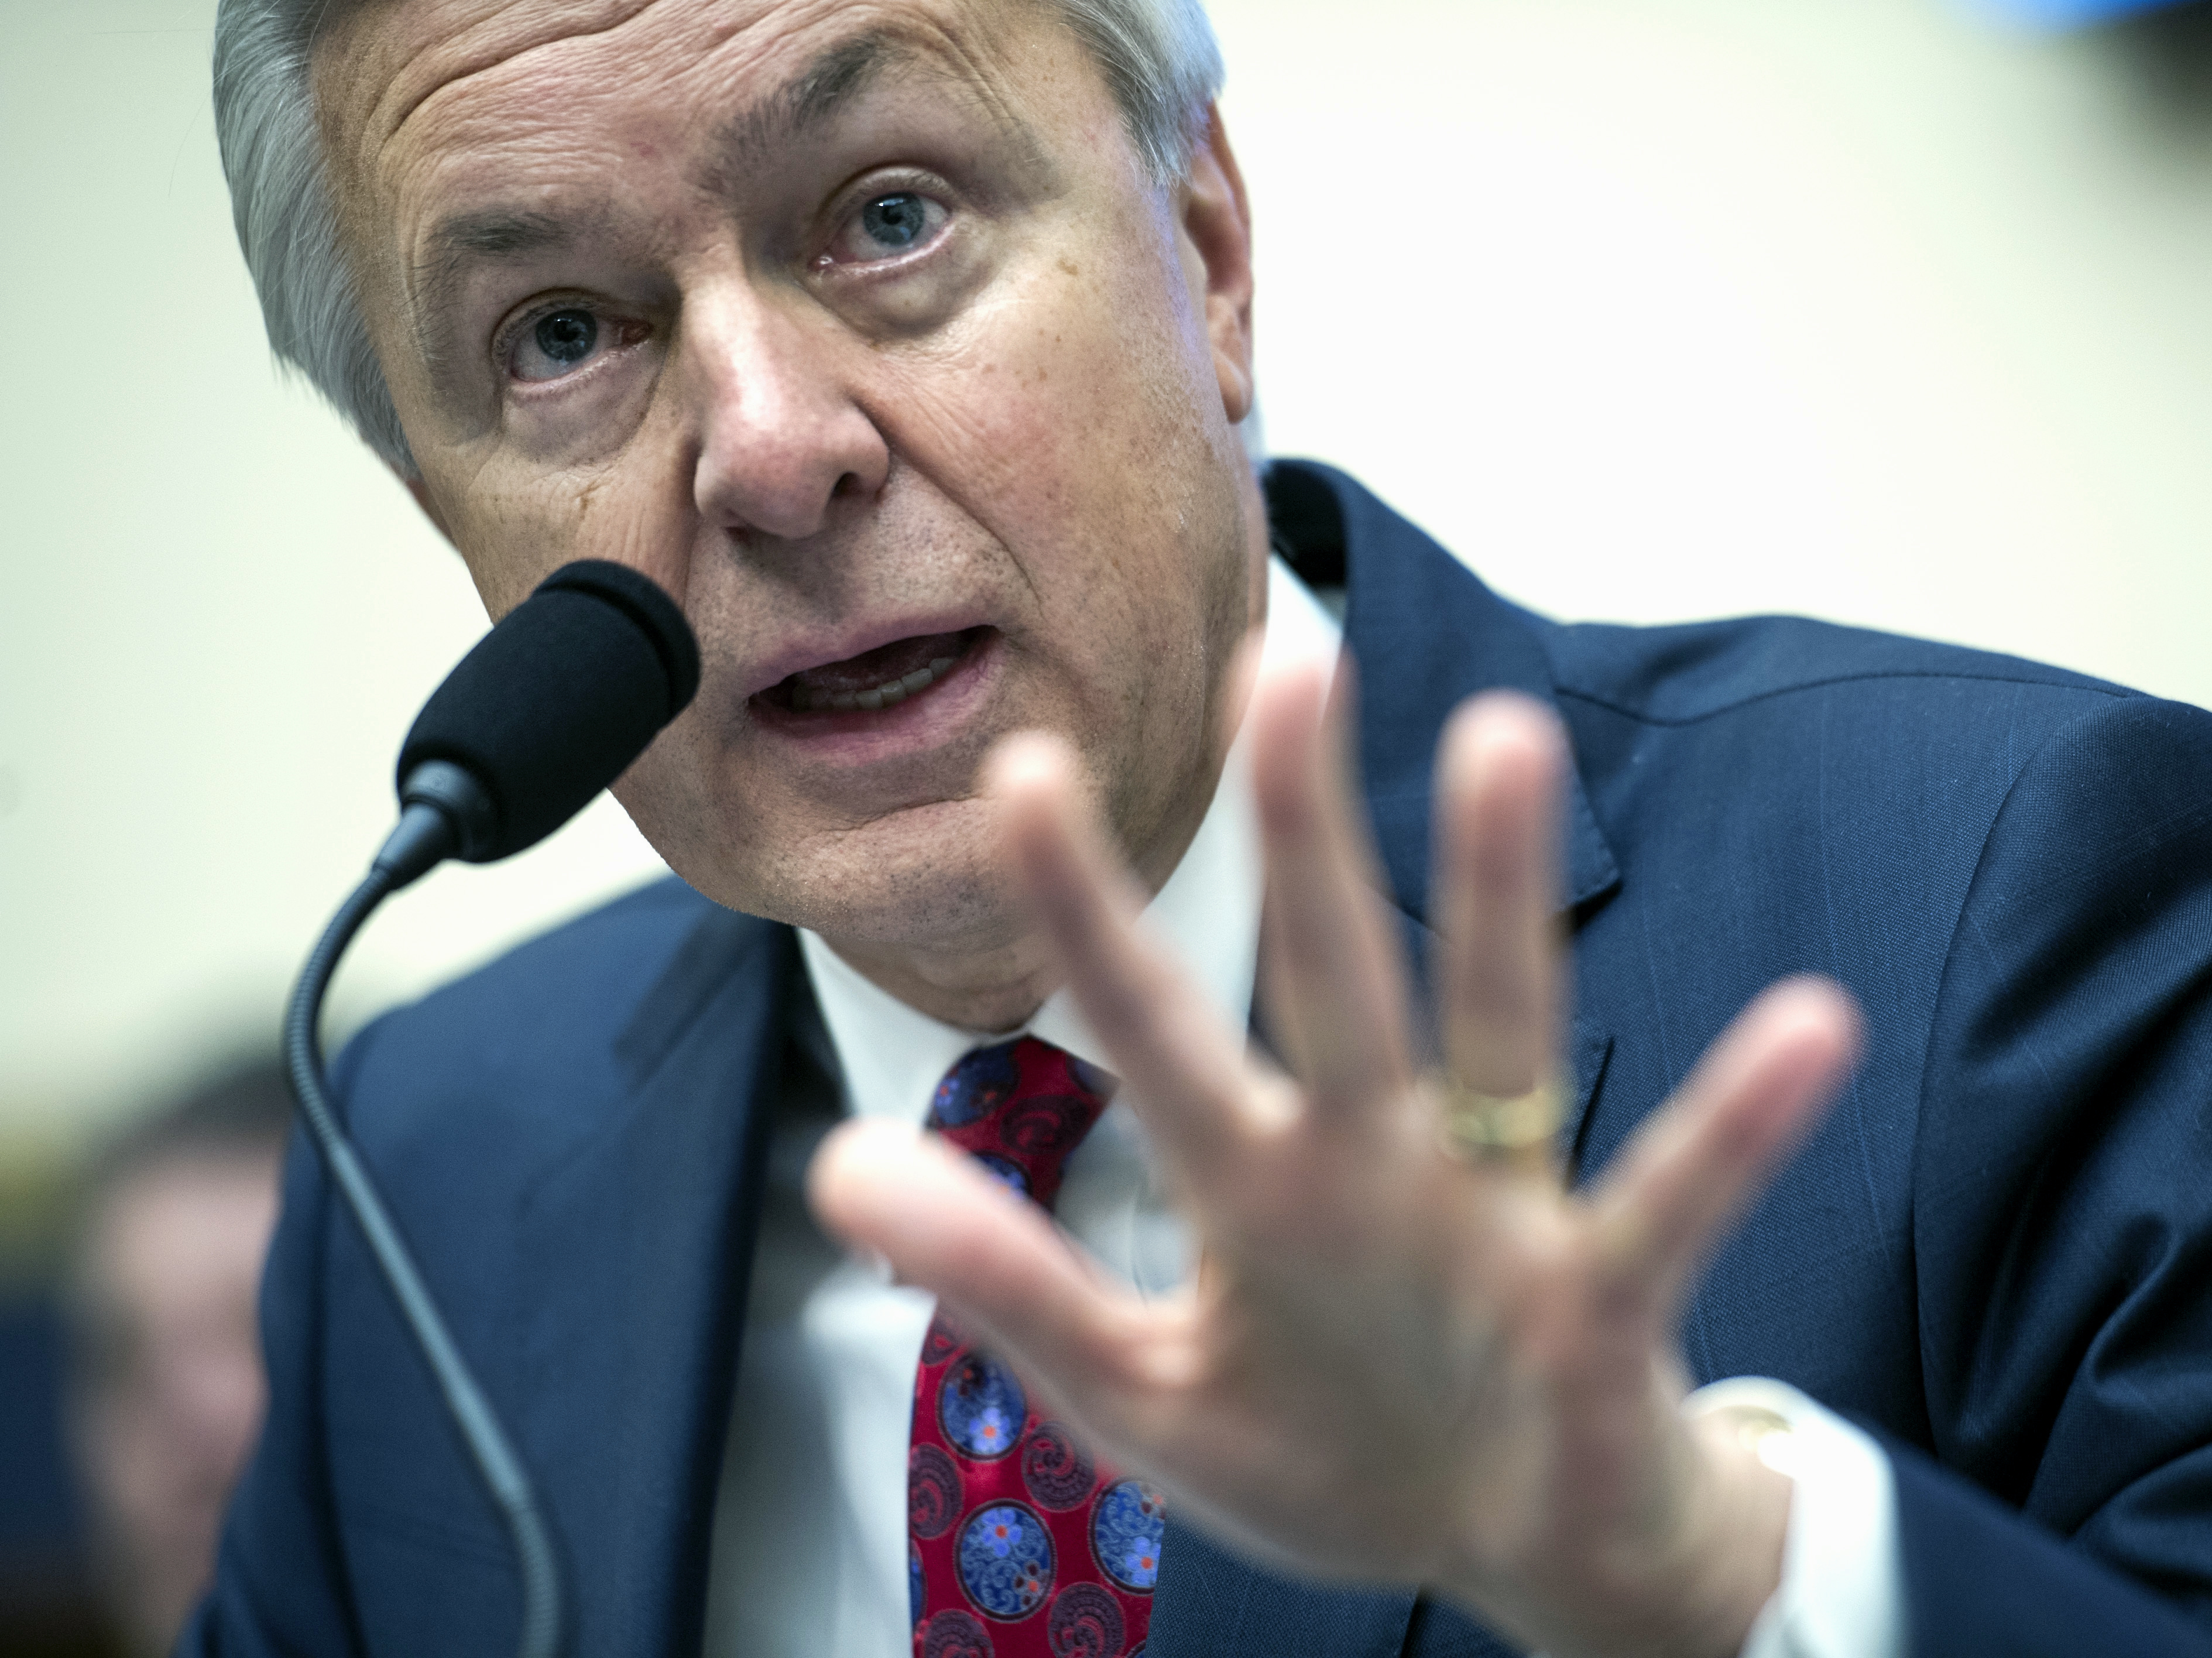 Wells Fargo CEO John Stumpf testifies on Capitol Hill in Washington on Sept. 29 before the House Financial Services Committee investigating Wells Fargo's opening of unauthorized customer accounts. Cliff Owen/AP.